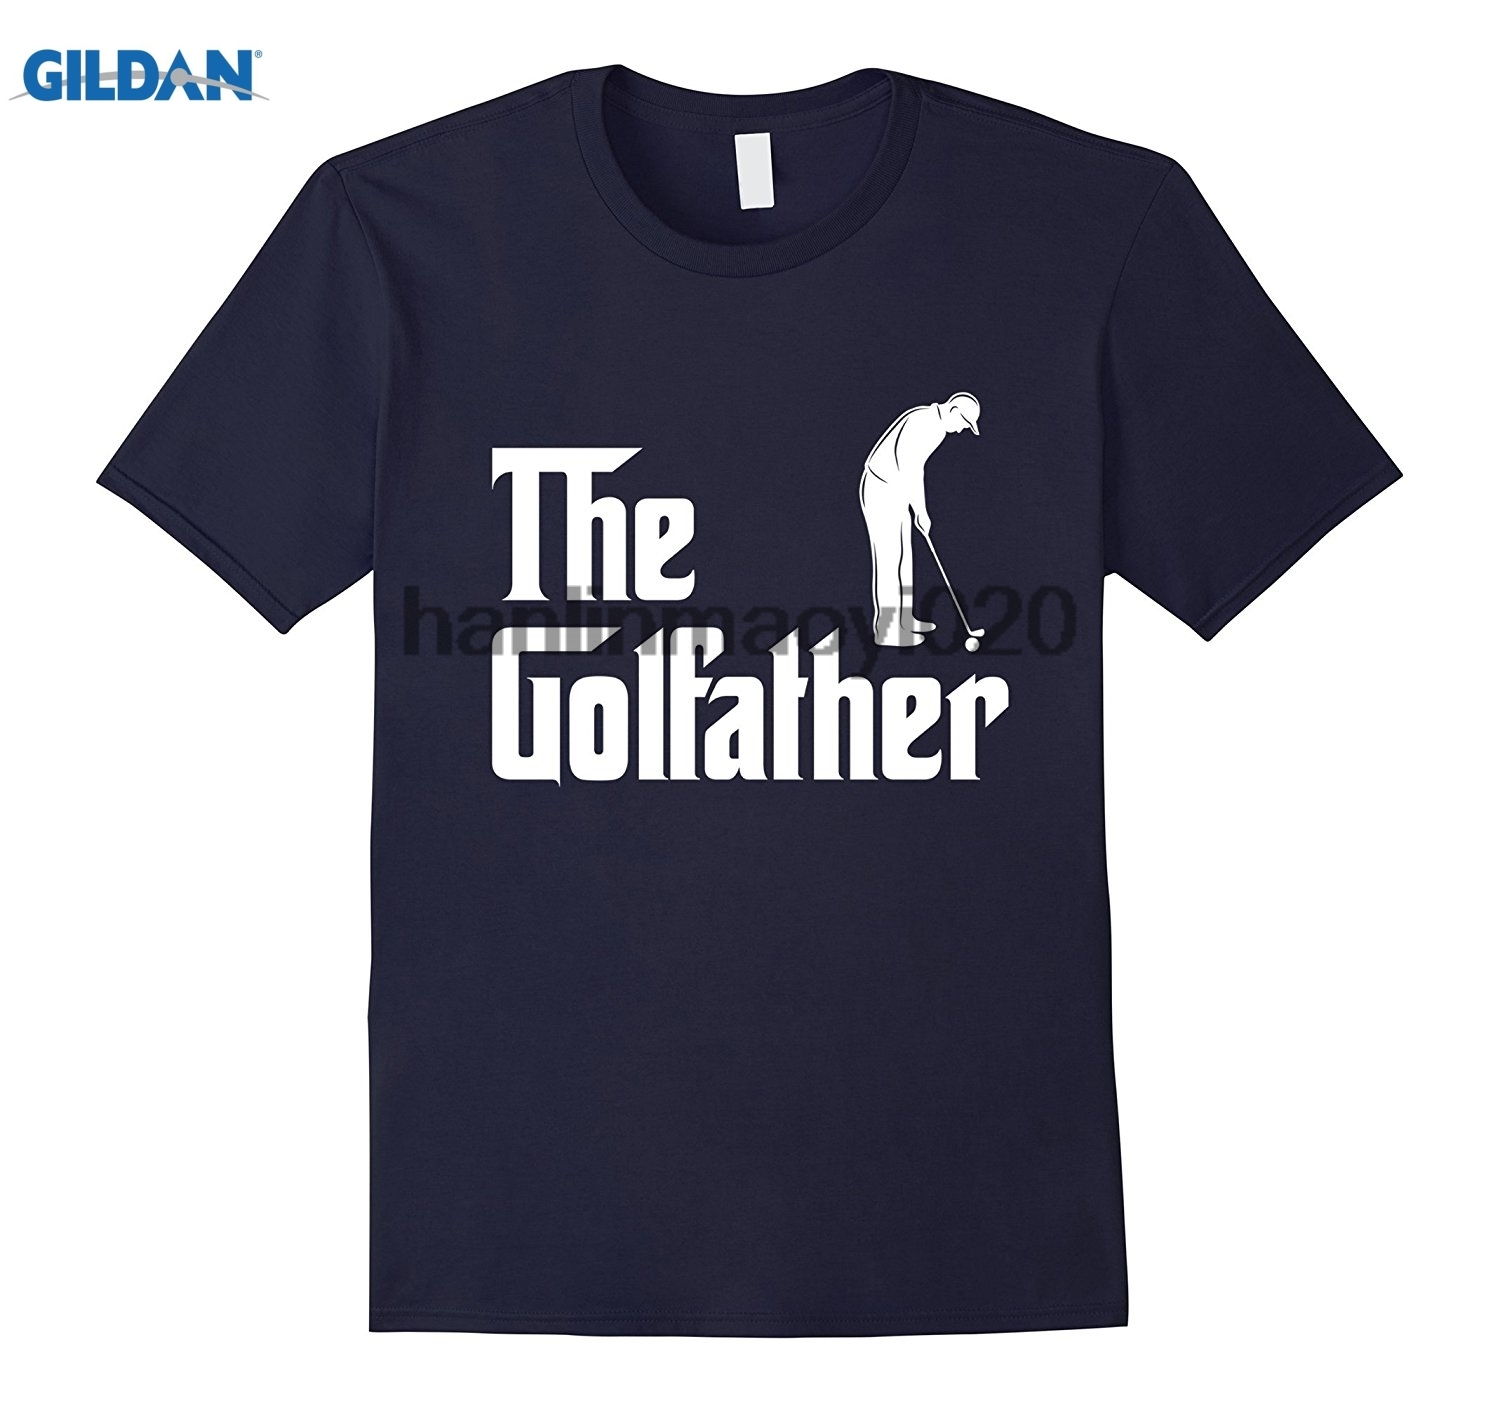 GILDAN Funny Father Love Golfing Quote Gift The Golfather T-Shirt